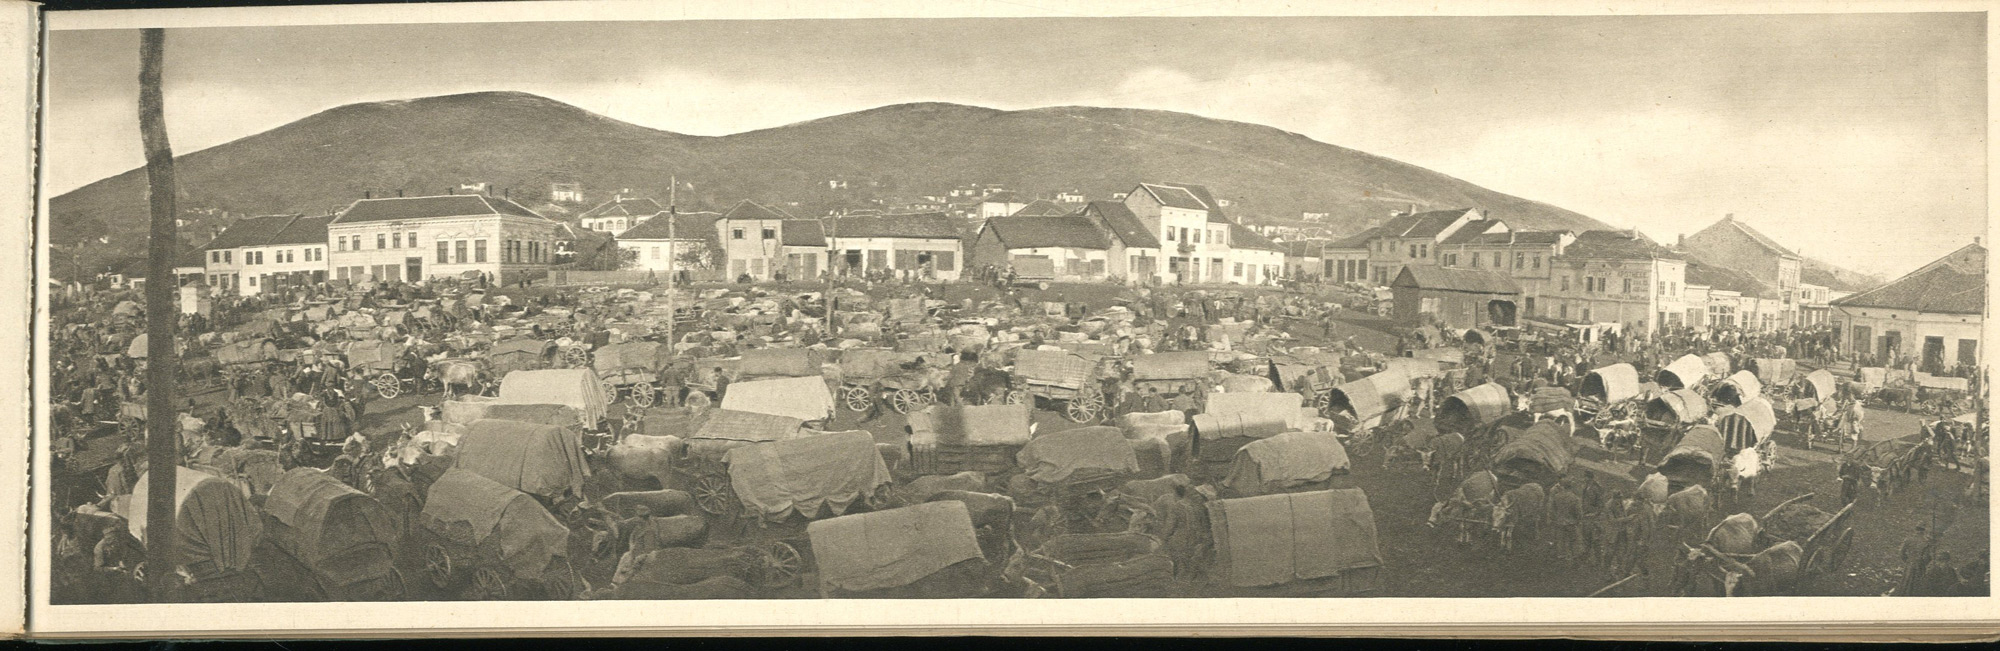 Following the fall of the Serbian capital Nish in  1915, the Serbian army retreated towards the Albanian coast. This photograph shows the army passing through a checkpoint in the town of Prokuplje.